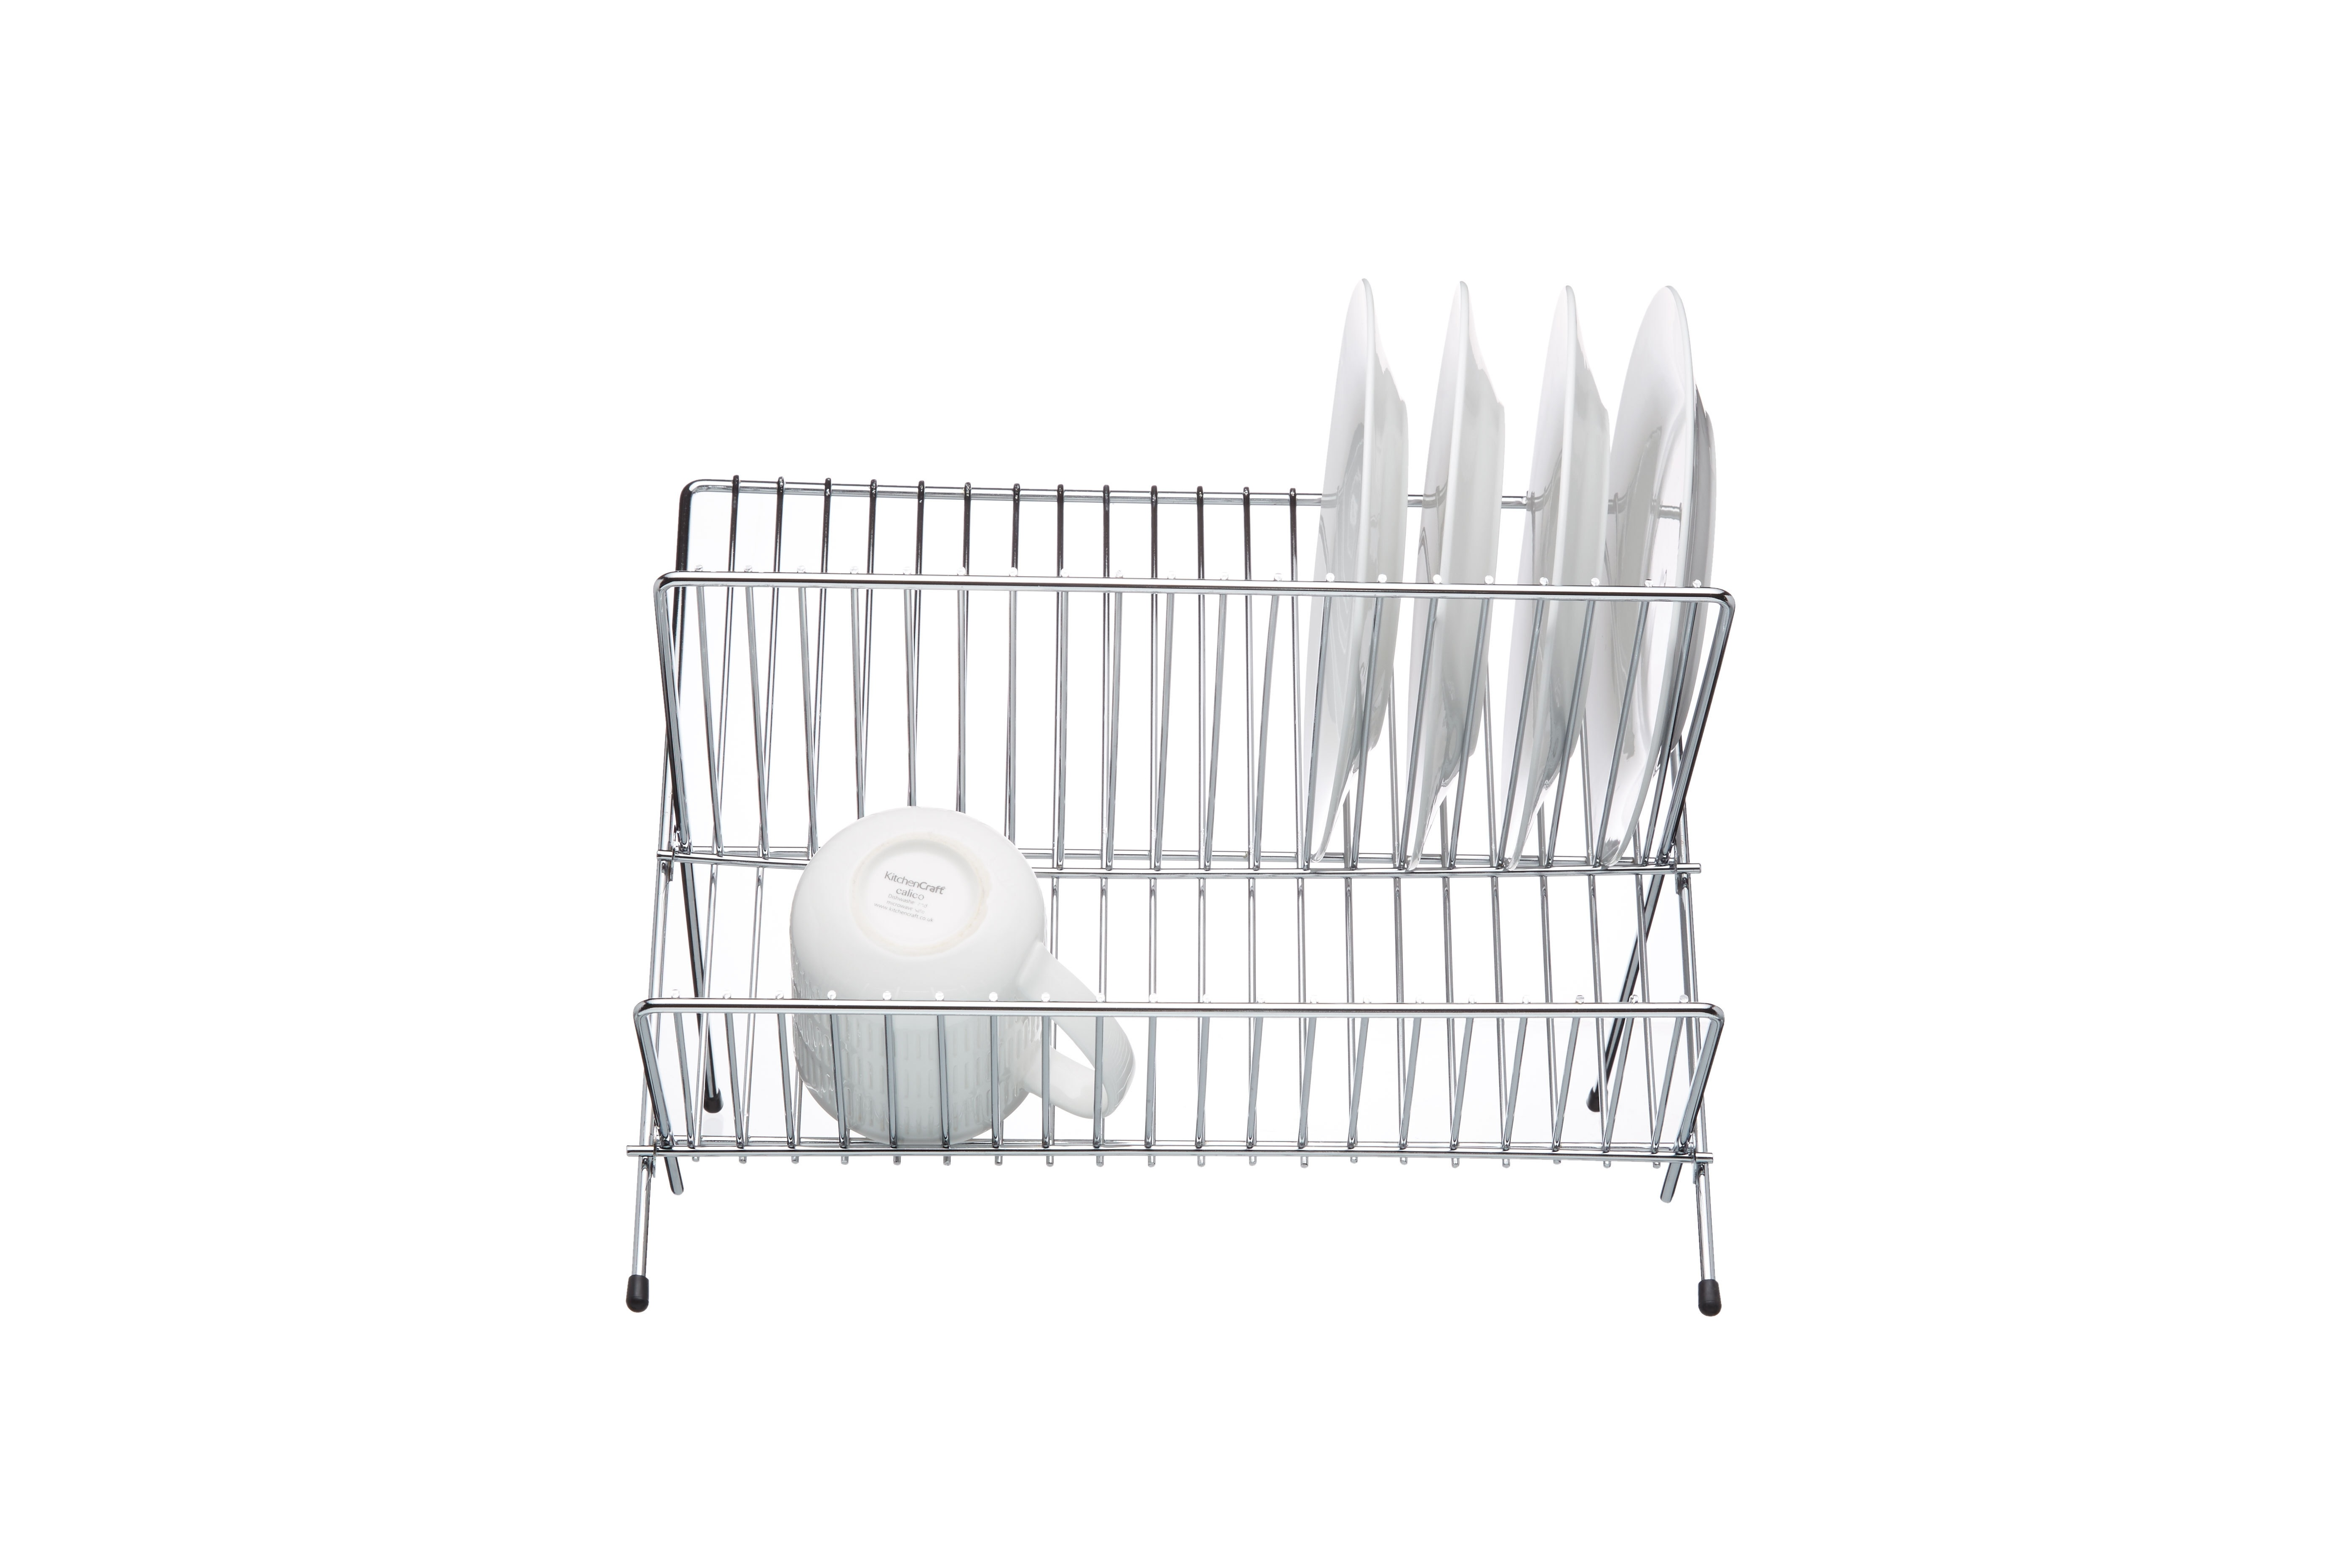 Oven Add A Shelf also 17137 moreover Chrome plated small fold away dish drainer kcfolddishsml further Pack of six 15cm flat sided skewers kcskewer15 also Set of 2 microwave bacon racks kcmbacon. on microwave oven stands